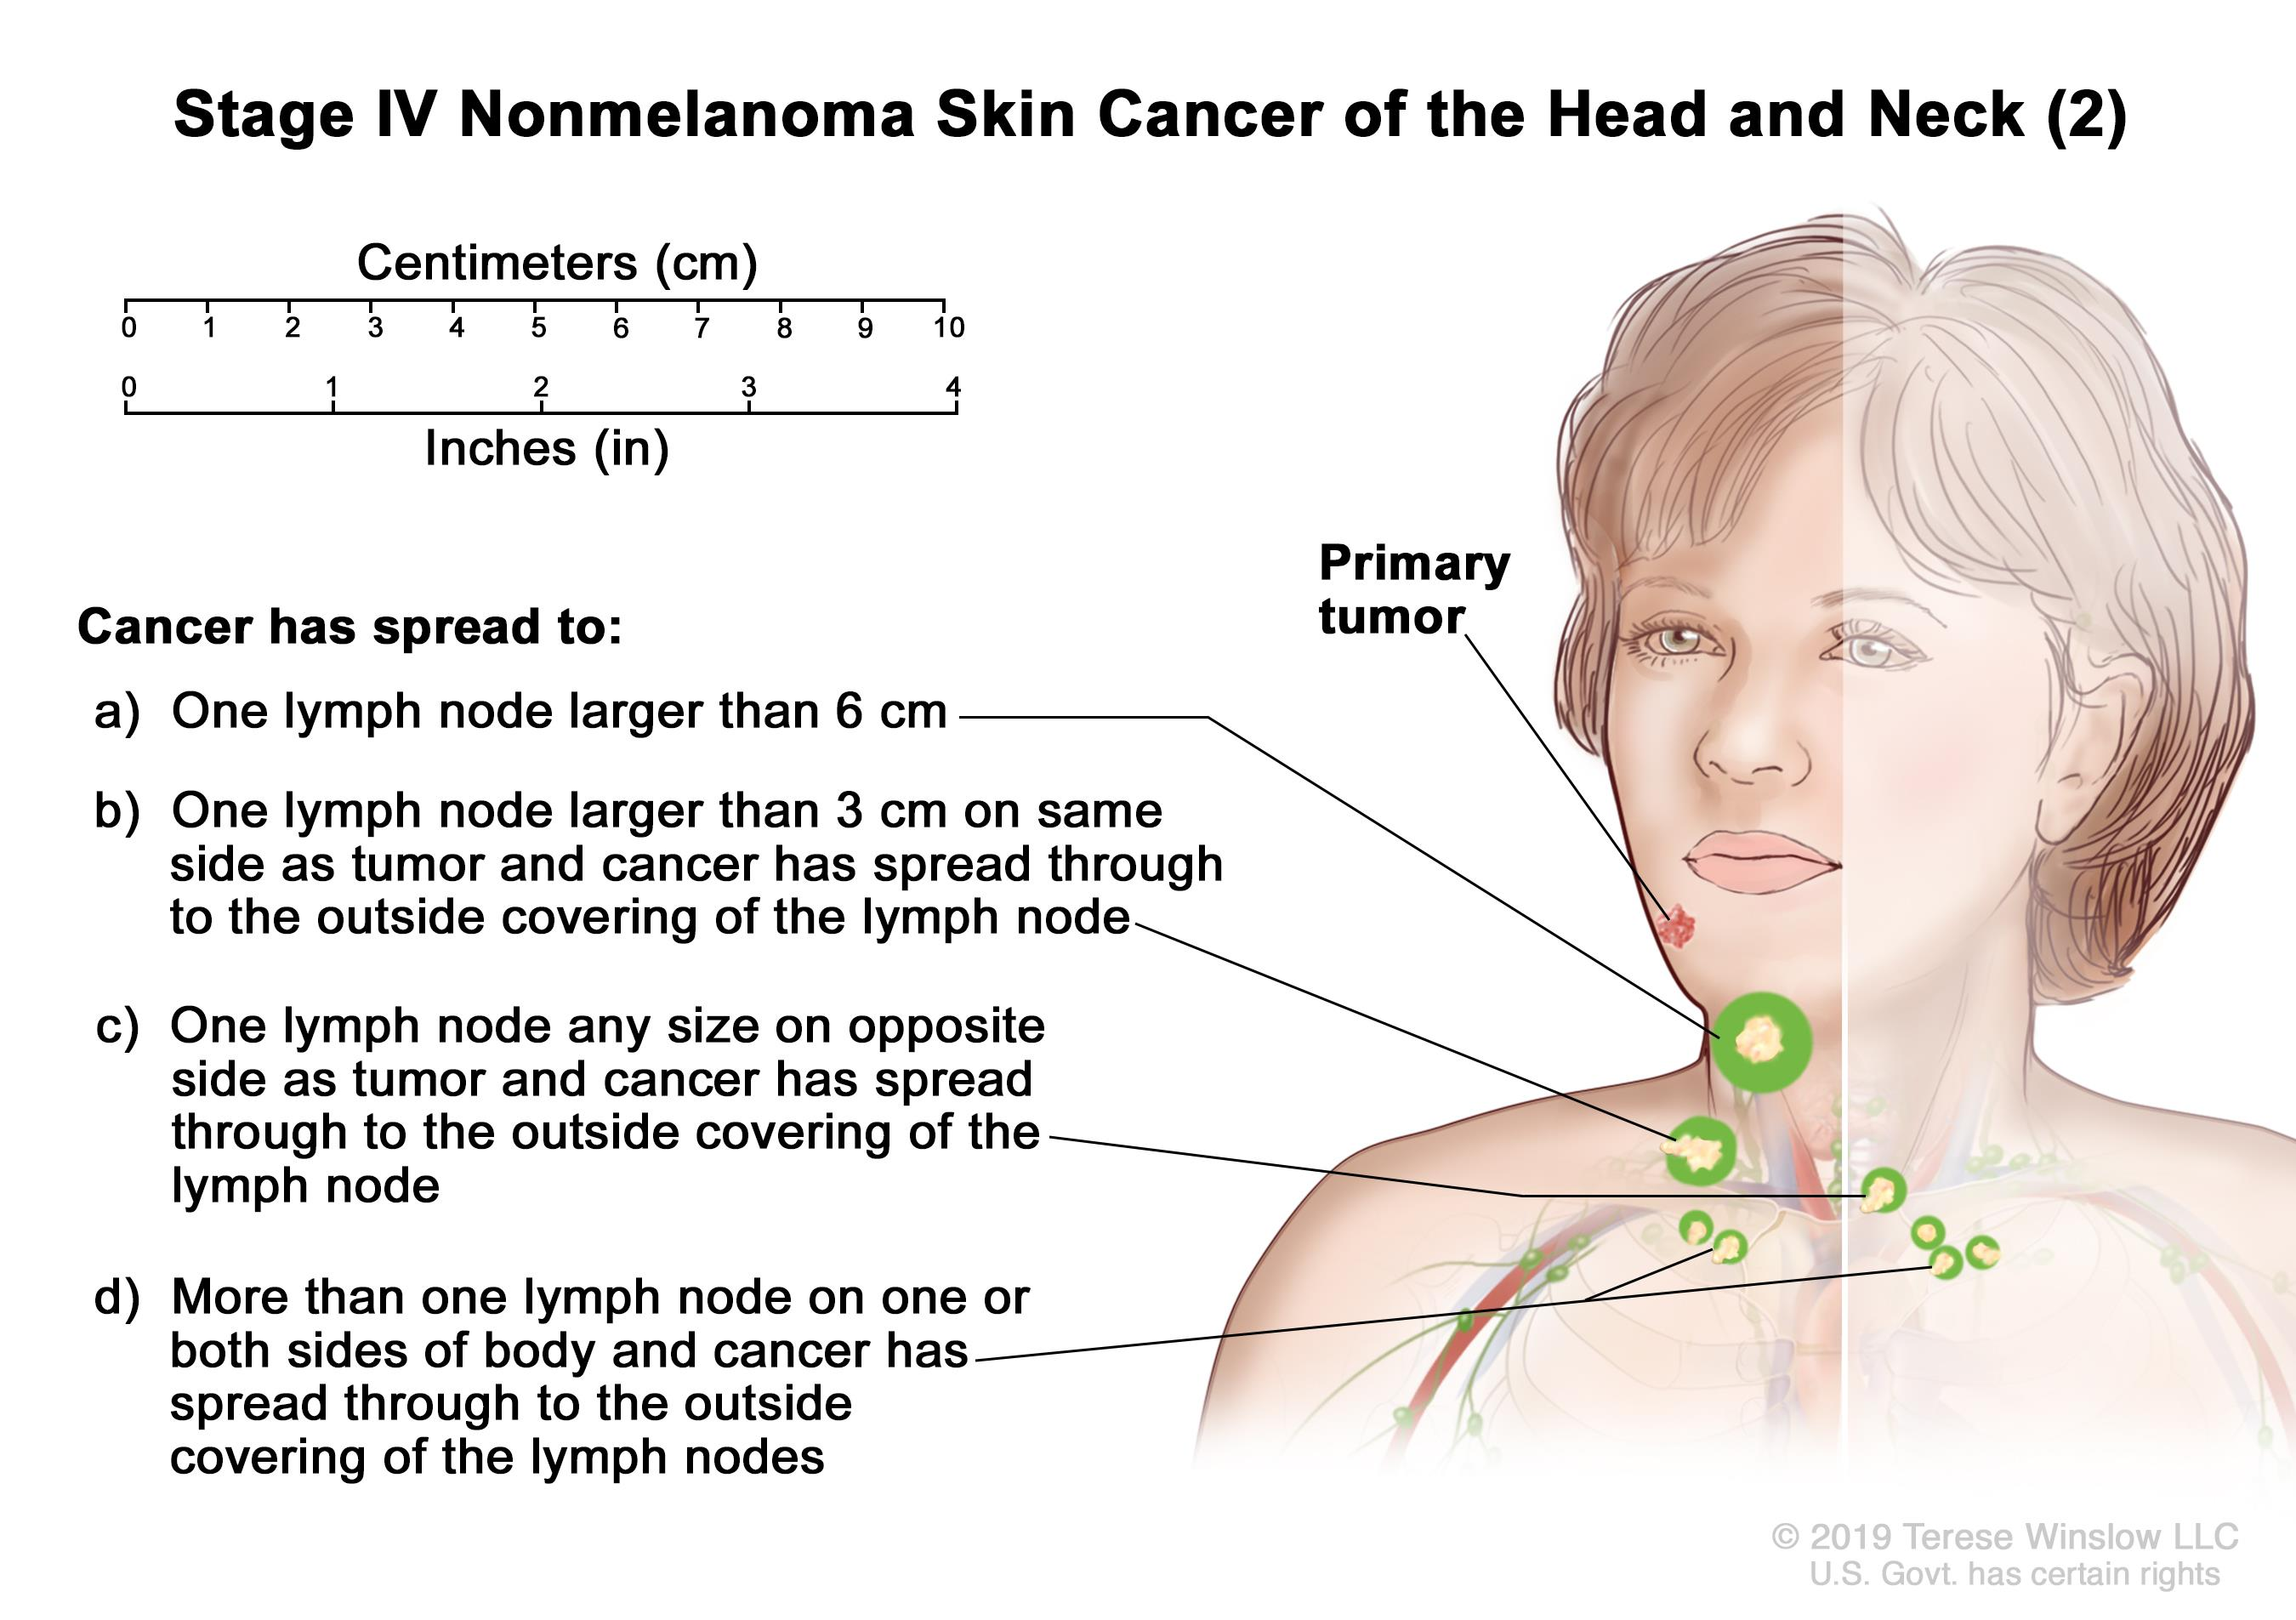 Stage IV nonmelanoma skin cancer of the head and neck (2); drawing shows a primary tumor on the face and cancer that has spread to: (a) one lymph node that is larger than 6 centimeters; (b) one lymph node on the same side of the body as the tumor, the node is larger than 3 centimeters, and cancer has spread through to the outside covering of the lymph node; (c) one lymph node on the opposite side of the body as the tumor, the node is any size, and cancer has spread through to the outside covering of the lymph node; and (d) more than one lymph node on one or both sides of the body and cancer has spread through to the outside covering of the lymph nodes. Also shown is a 10-centimeter ruler and a 4-inch ruler.